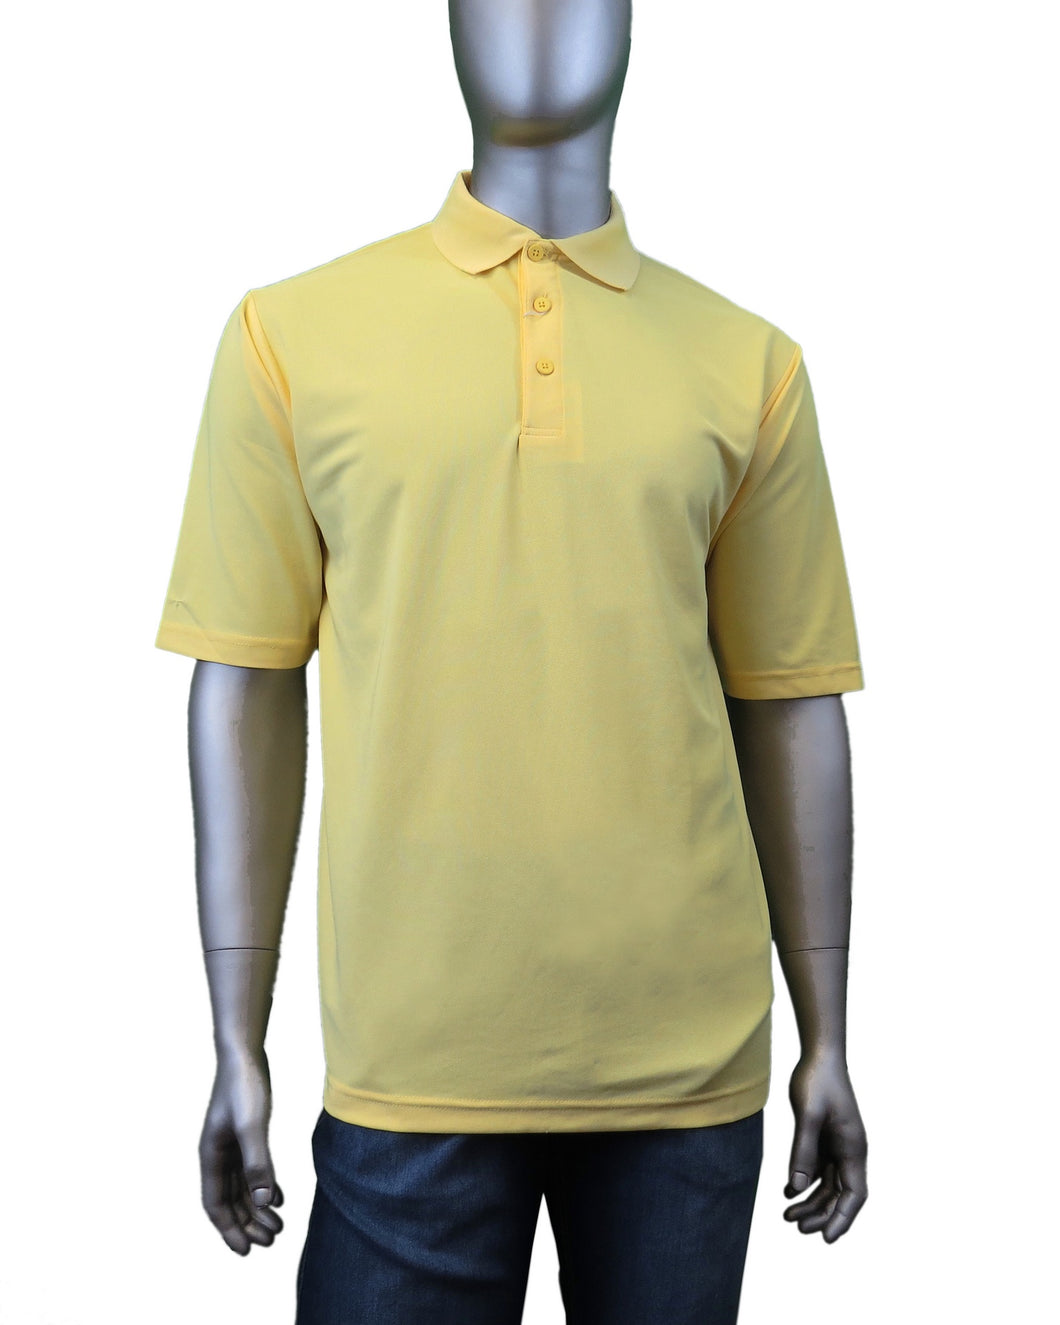 Wild River | ZIGF194 | Polo T-Shirt | Yellow